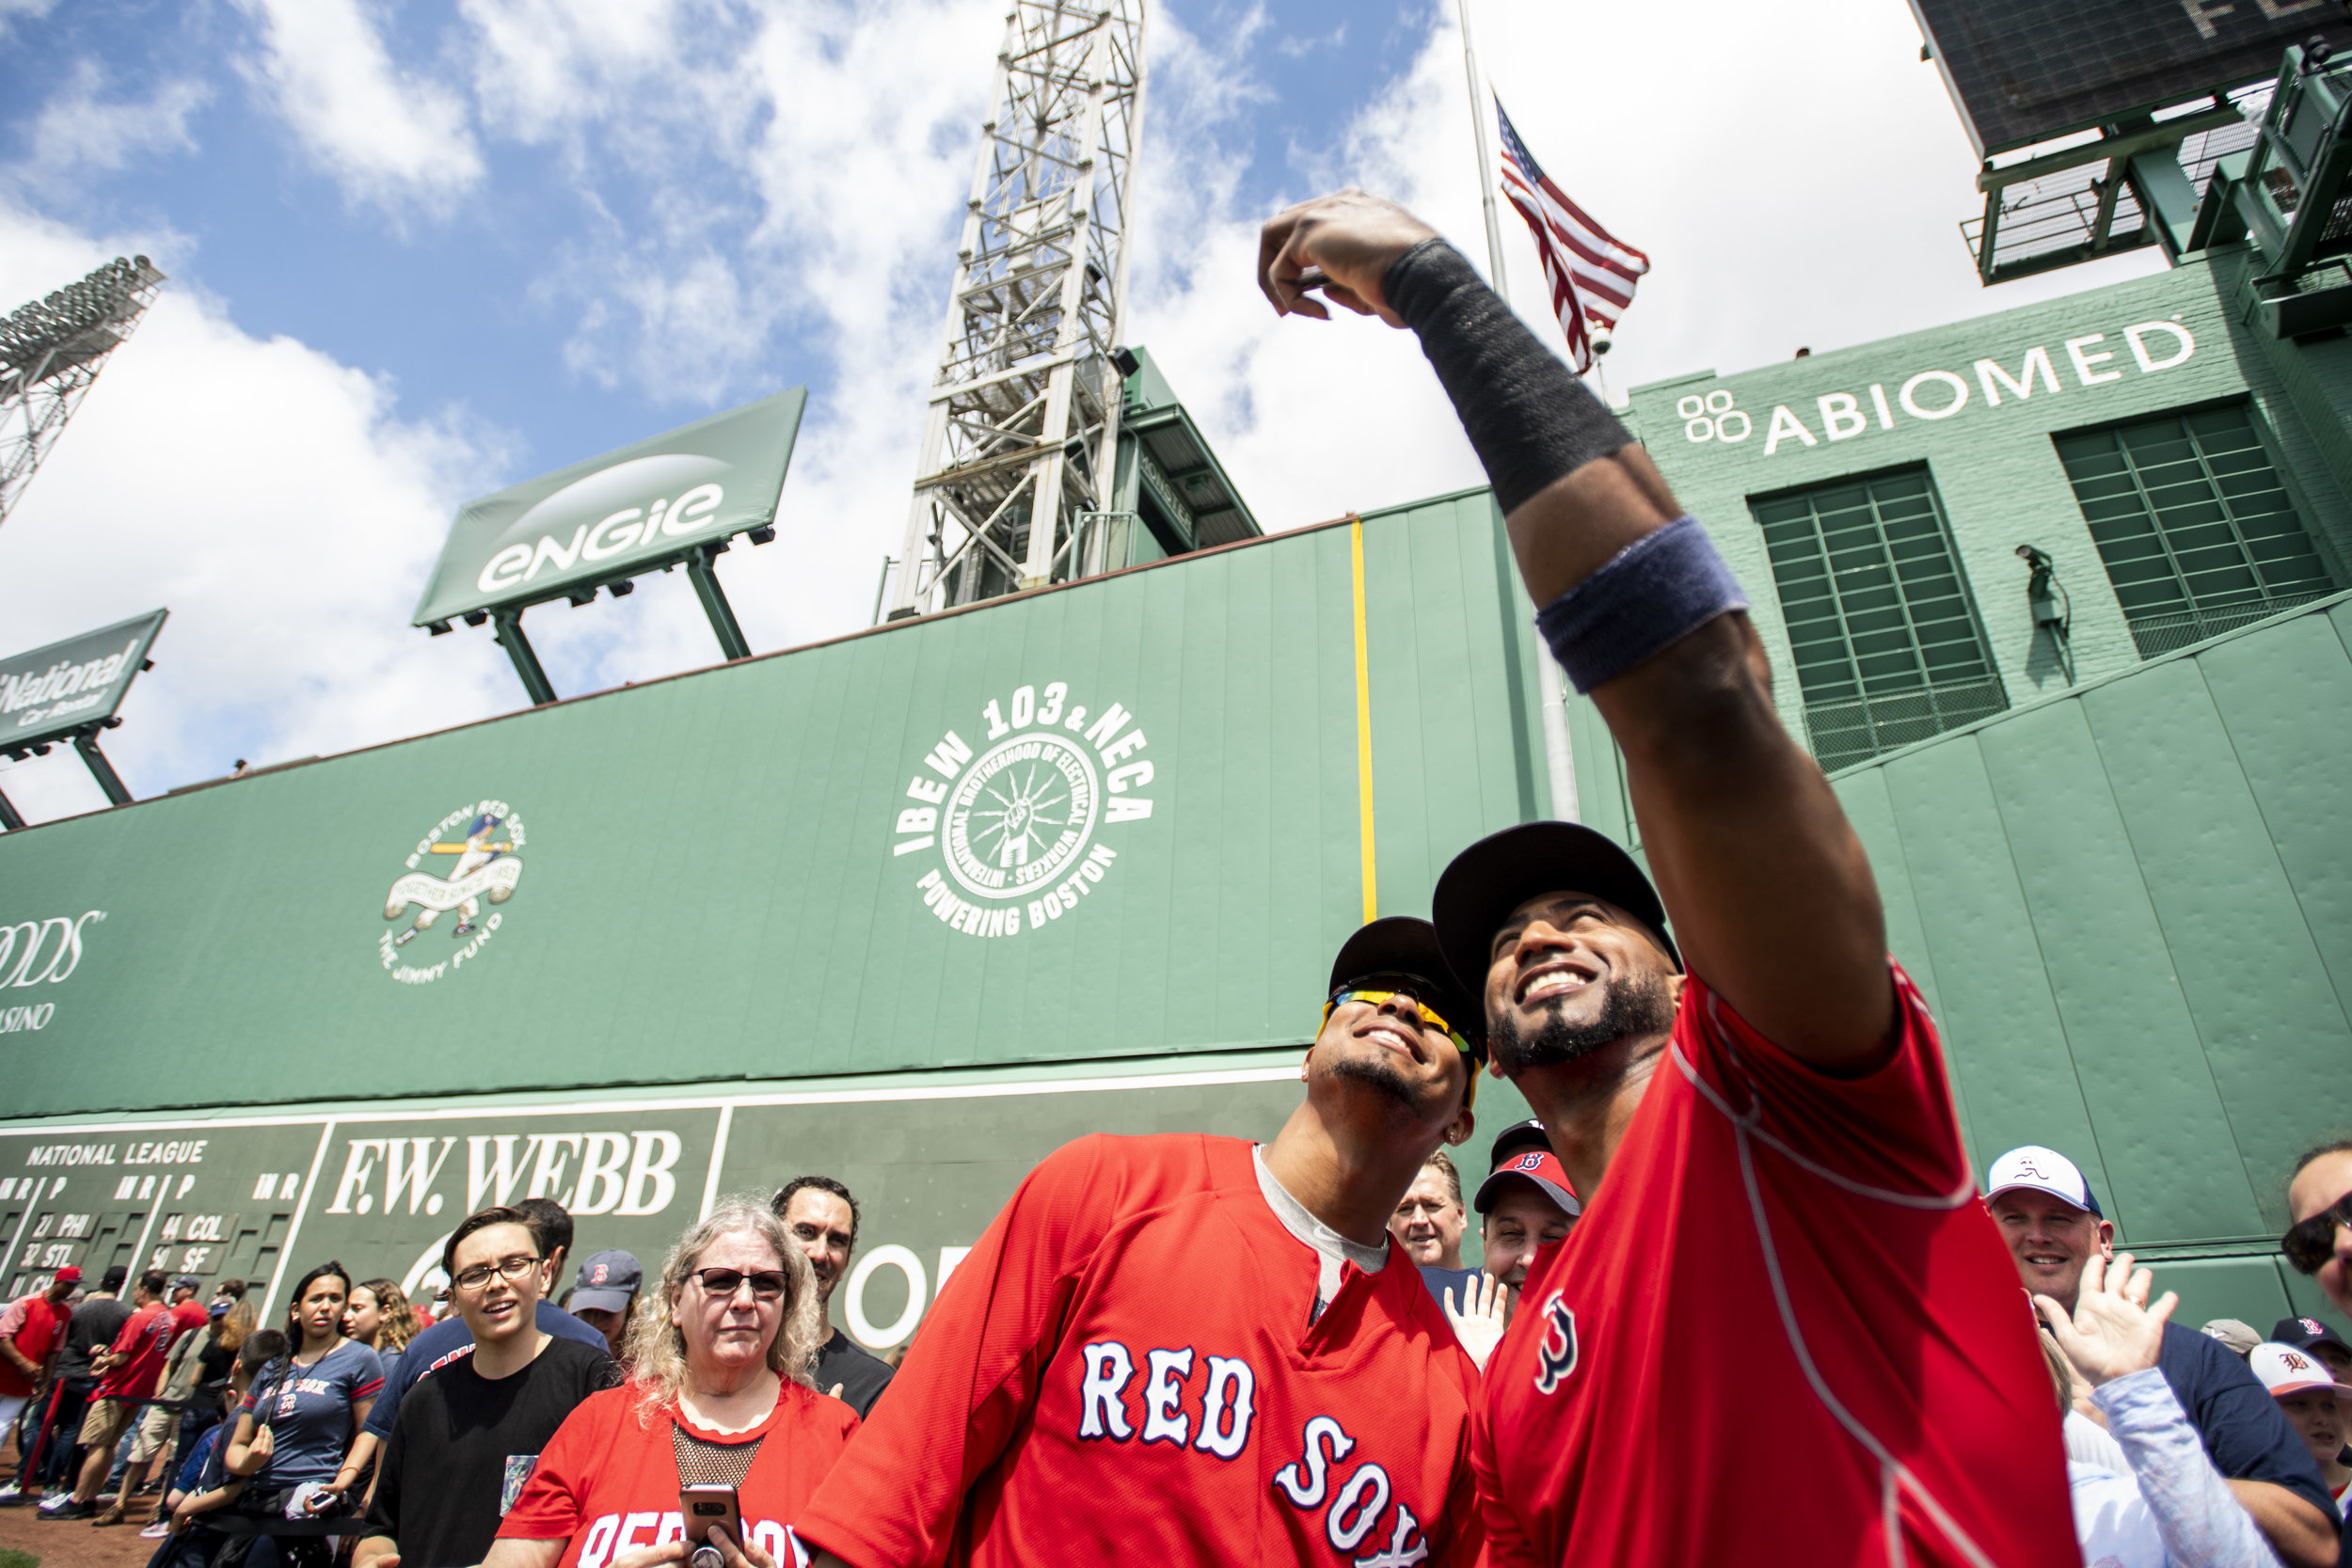 May 20, 2018, Boston, MA: Boston Red Sox shortstop Xander Bogaerts and Boston Red Sox second basemen Eduardo Nunez take a selfie fans during Photo Day before the Boston Red Sox face the Baltimore Orioles at Fenway Park in Boston, Massachusetts on Saturday, May 20, 2018. (Photo by Matthew Thomas/Boston Red Sox)